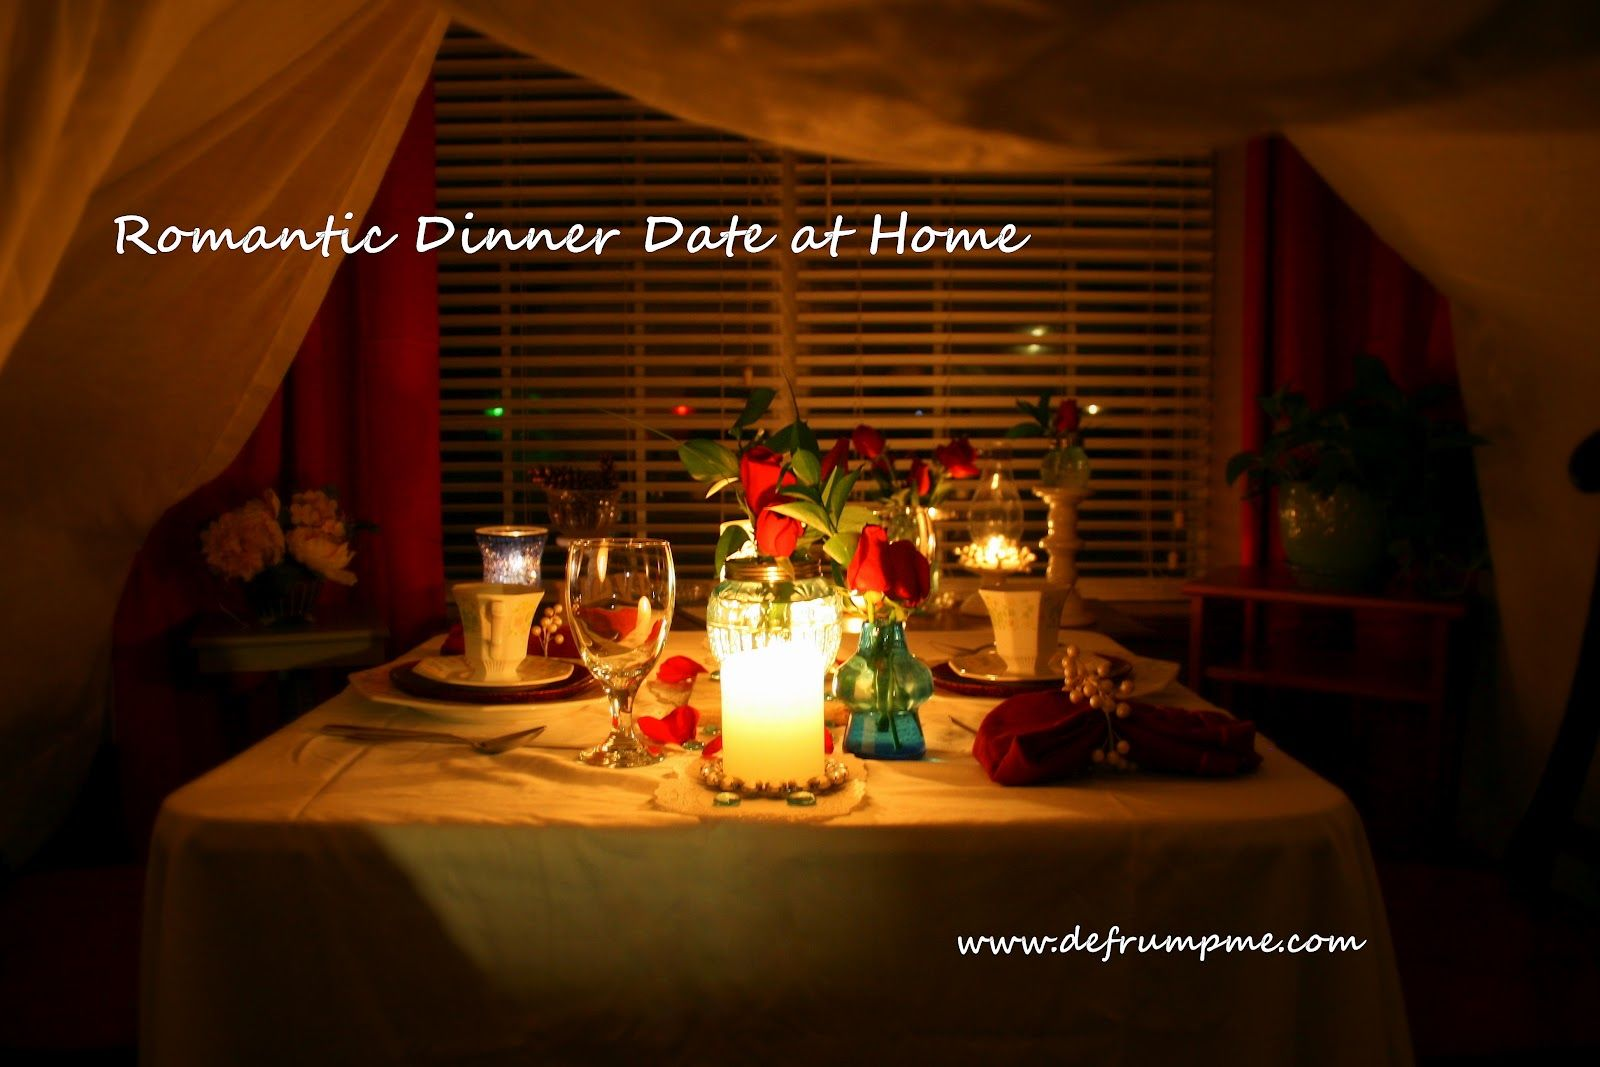 Romantic Home Date Google Search Romance Pinterest Romantic